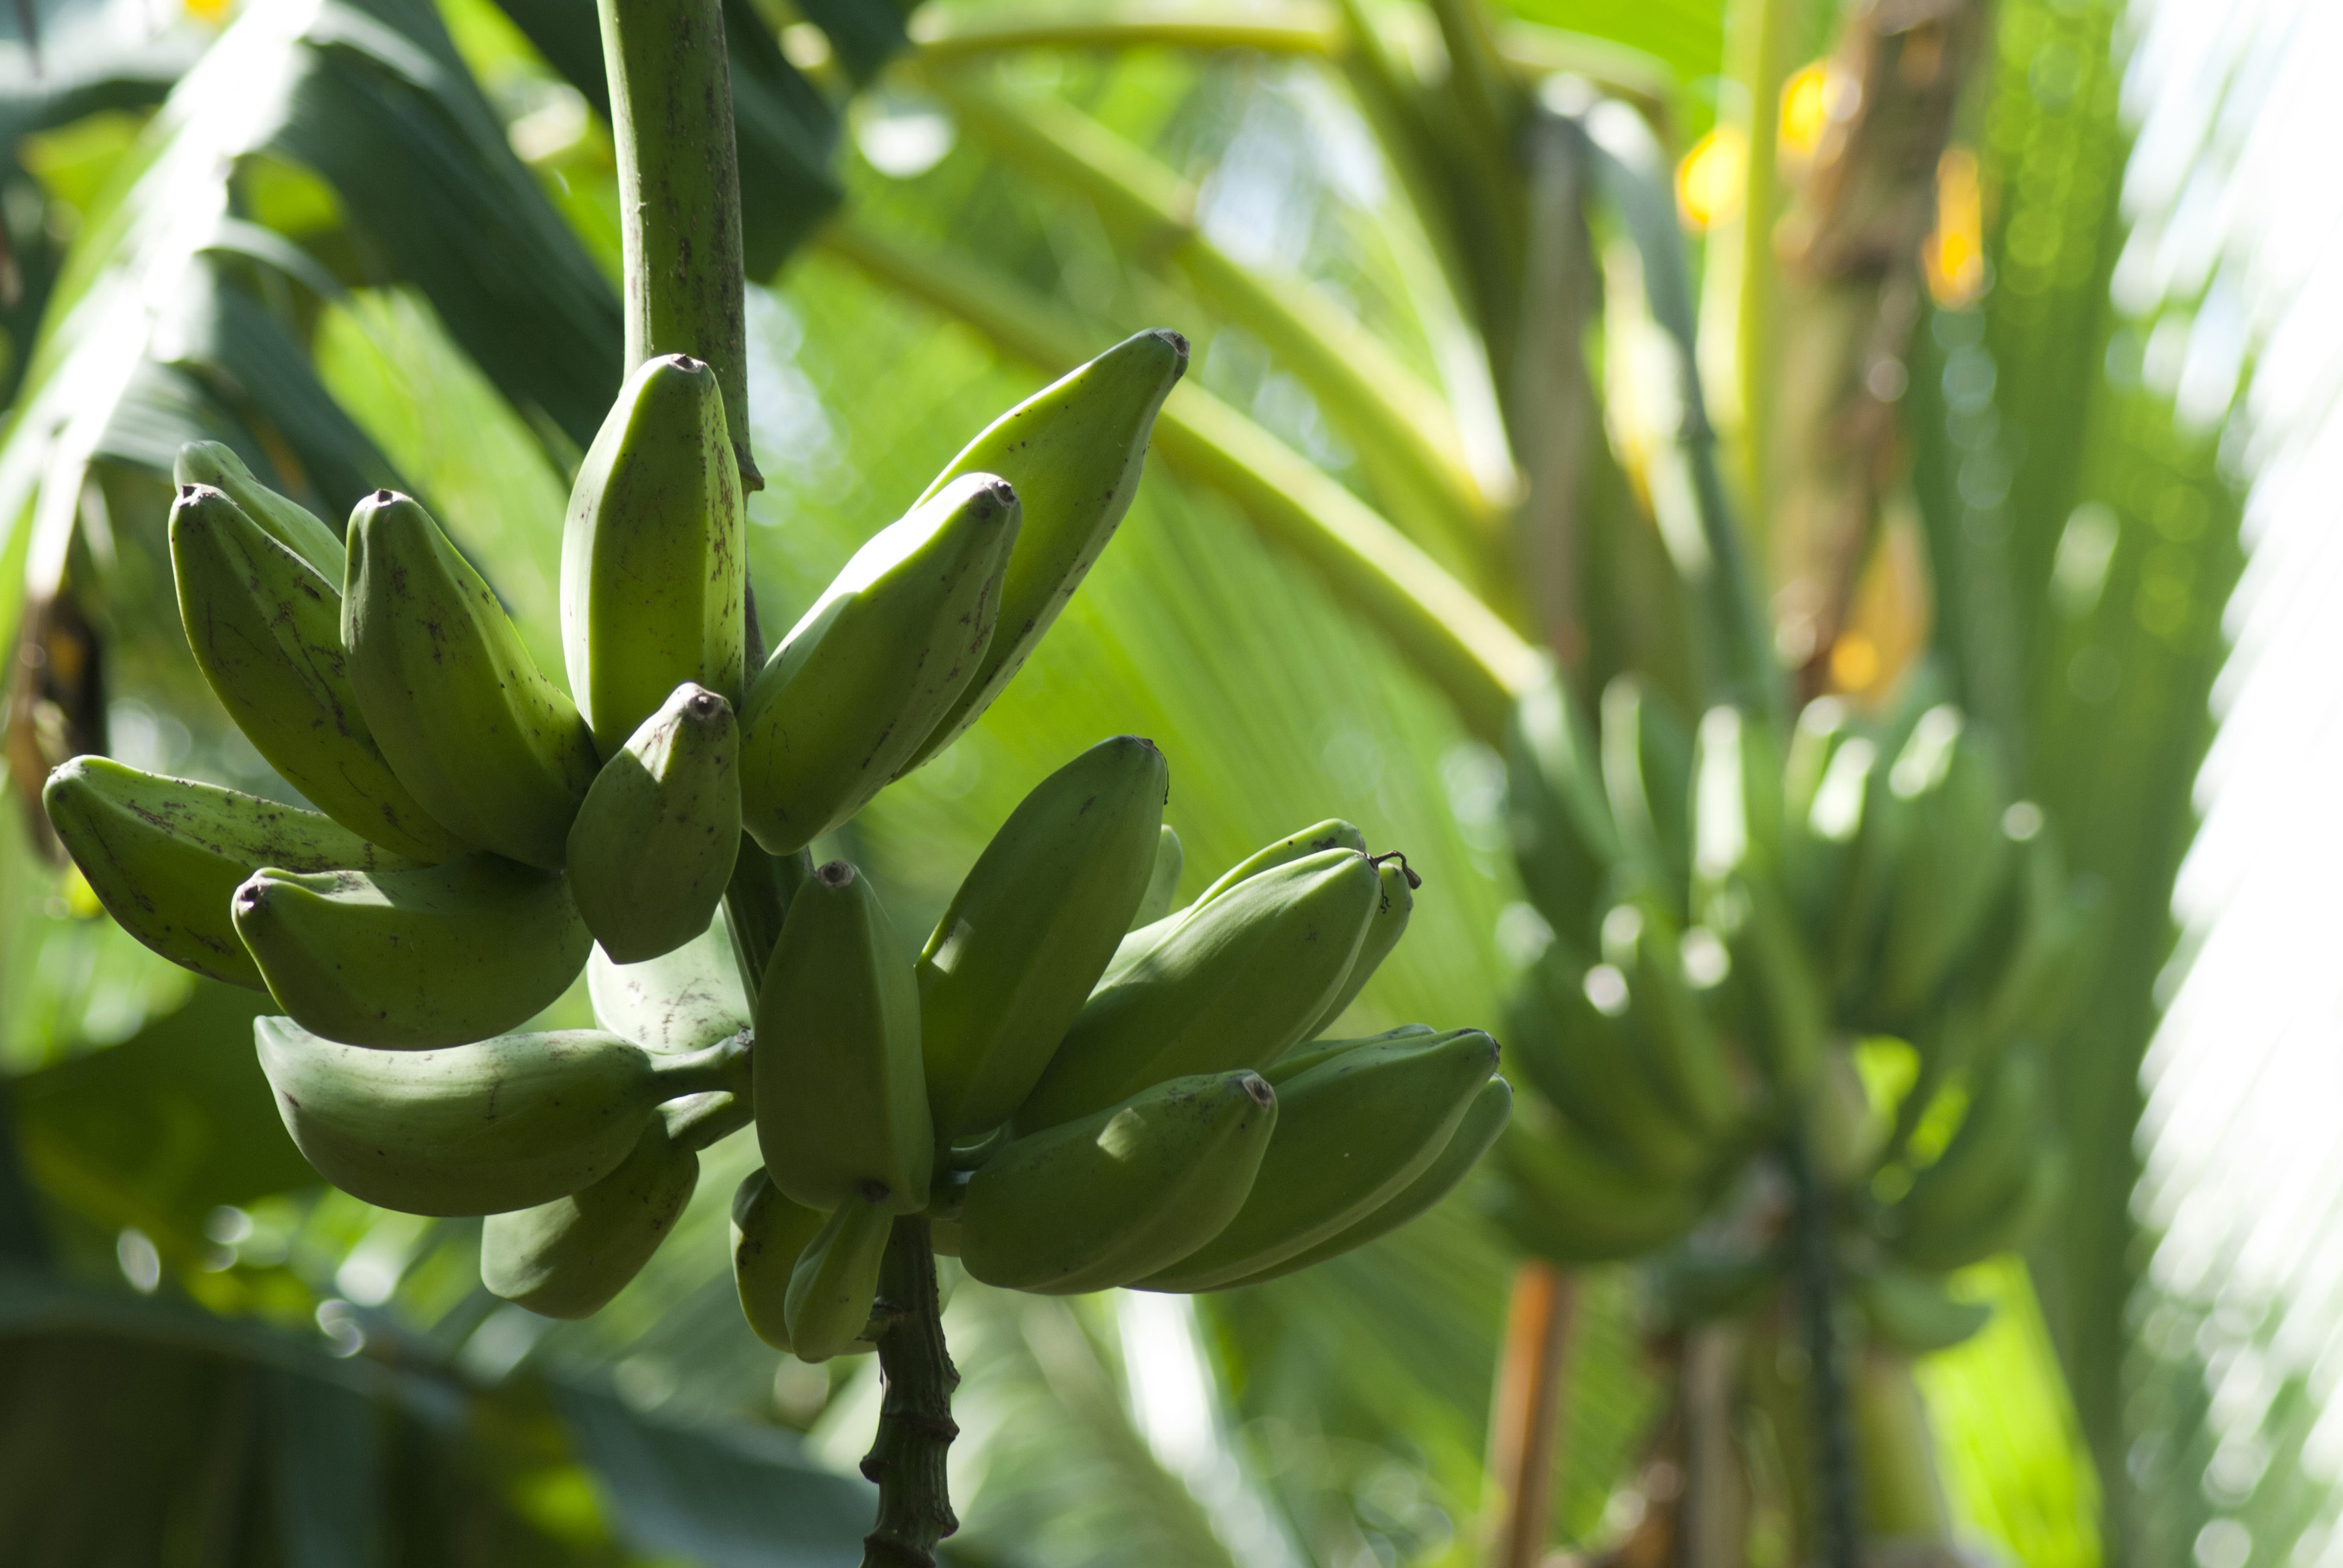 Bunch of bananas or plantains ripening on a plantation hanging in a cluster, the banana plant is the largest herbaceous flowering plant